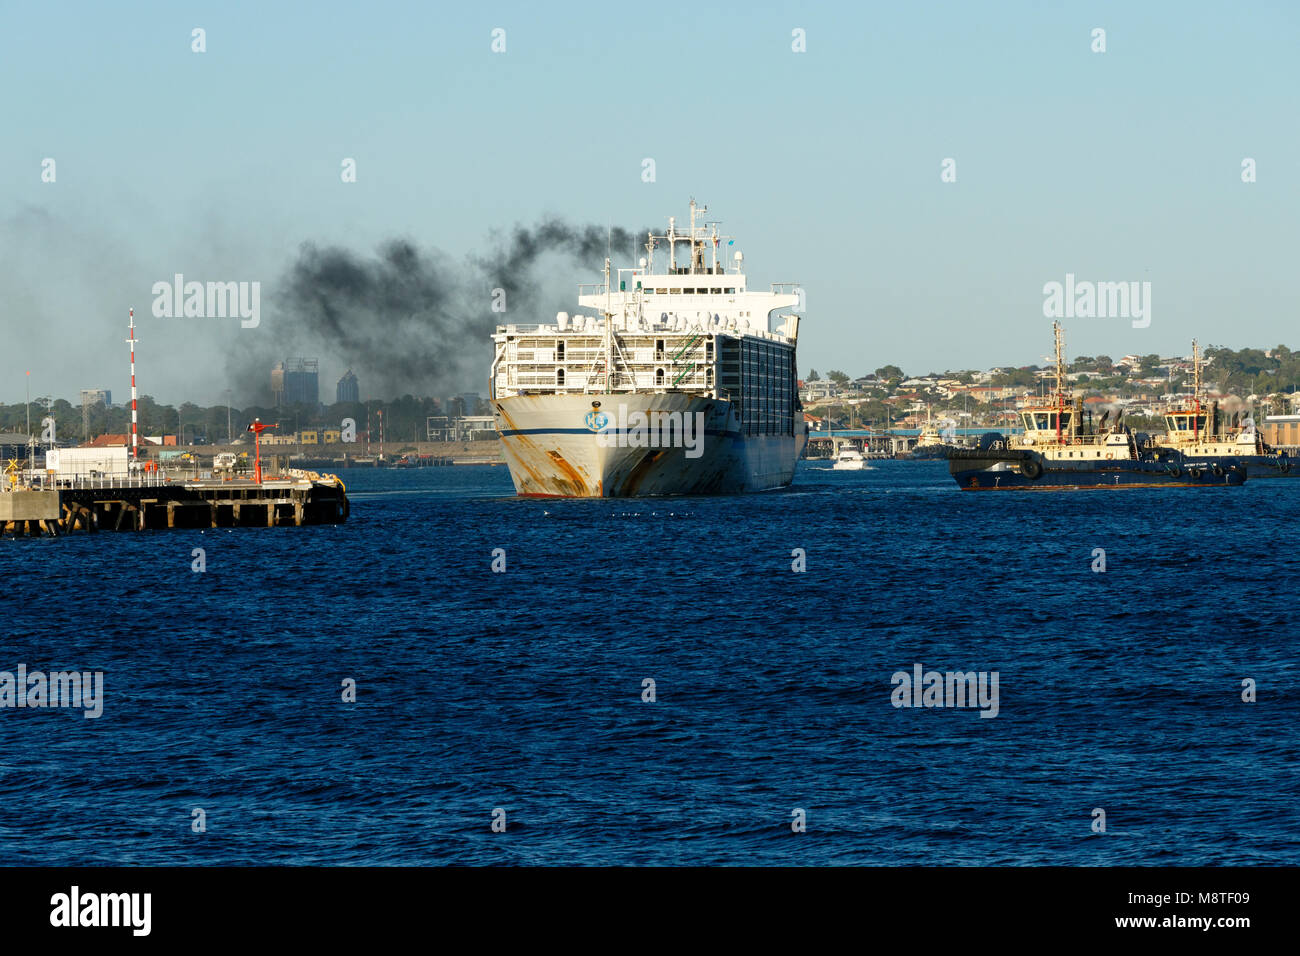 Sheep carrier AL SHUWAIKH leaving Fremantle harbour, Fremantle, Western Australia - Stock Image